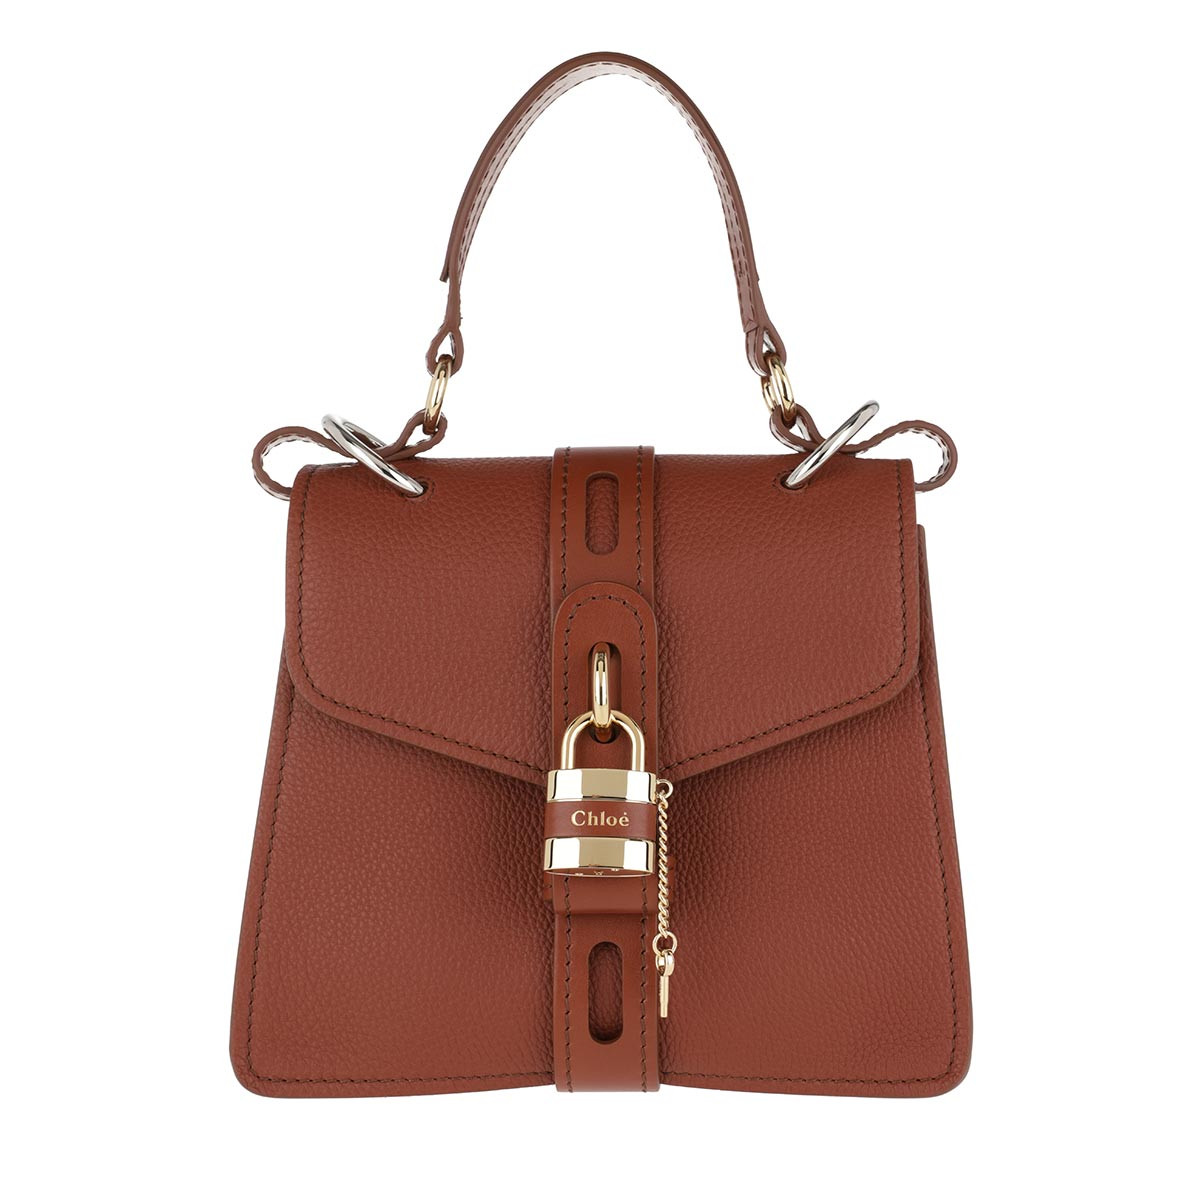 Chloé Satchel Bag - Aby Shoulder Bag Leather Sepia Brown - in braun - für Damen